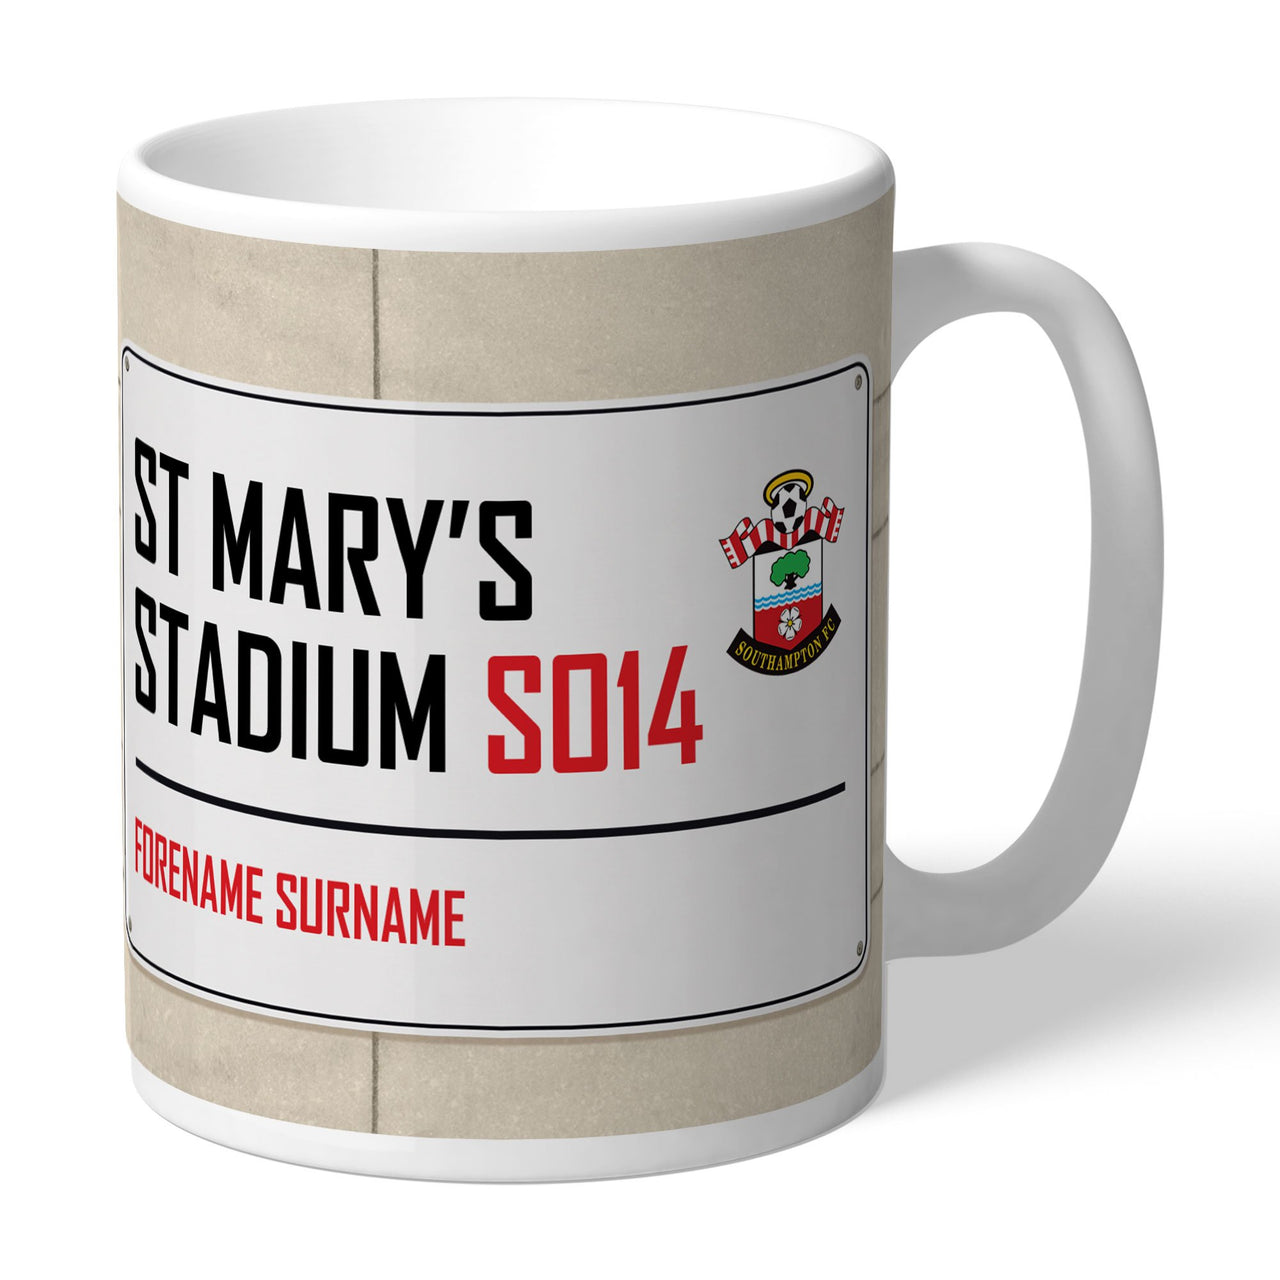 Southampton FC Street Sign Mugs, Gifts